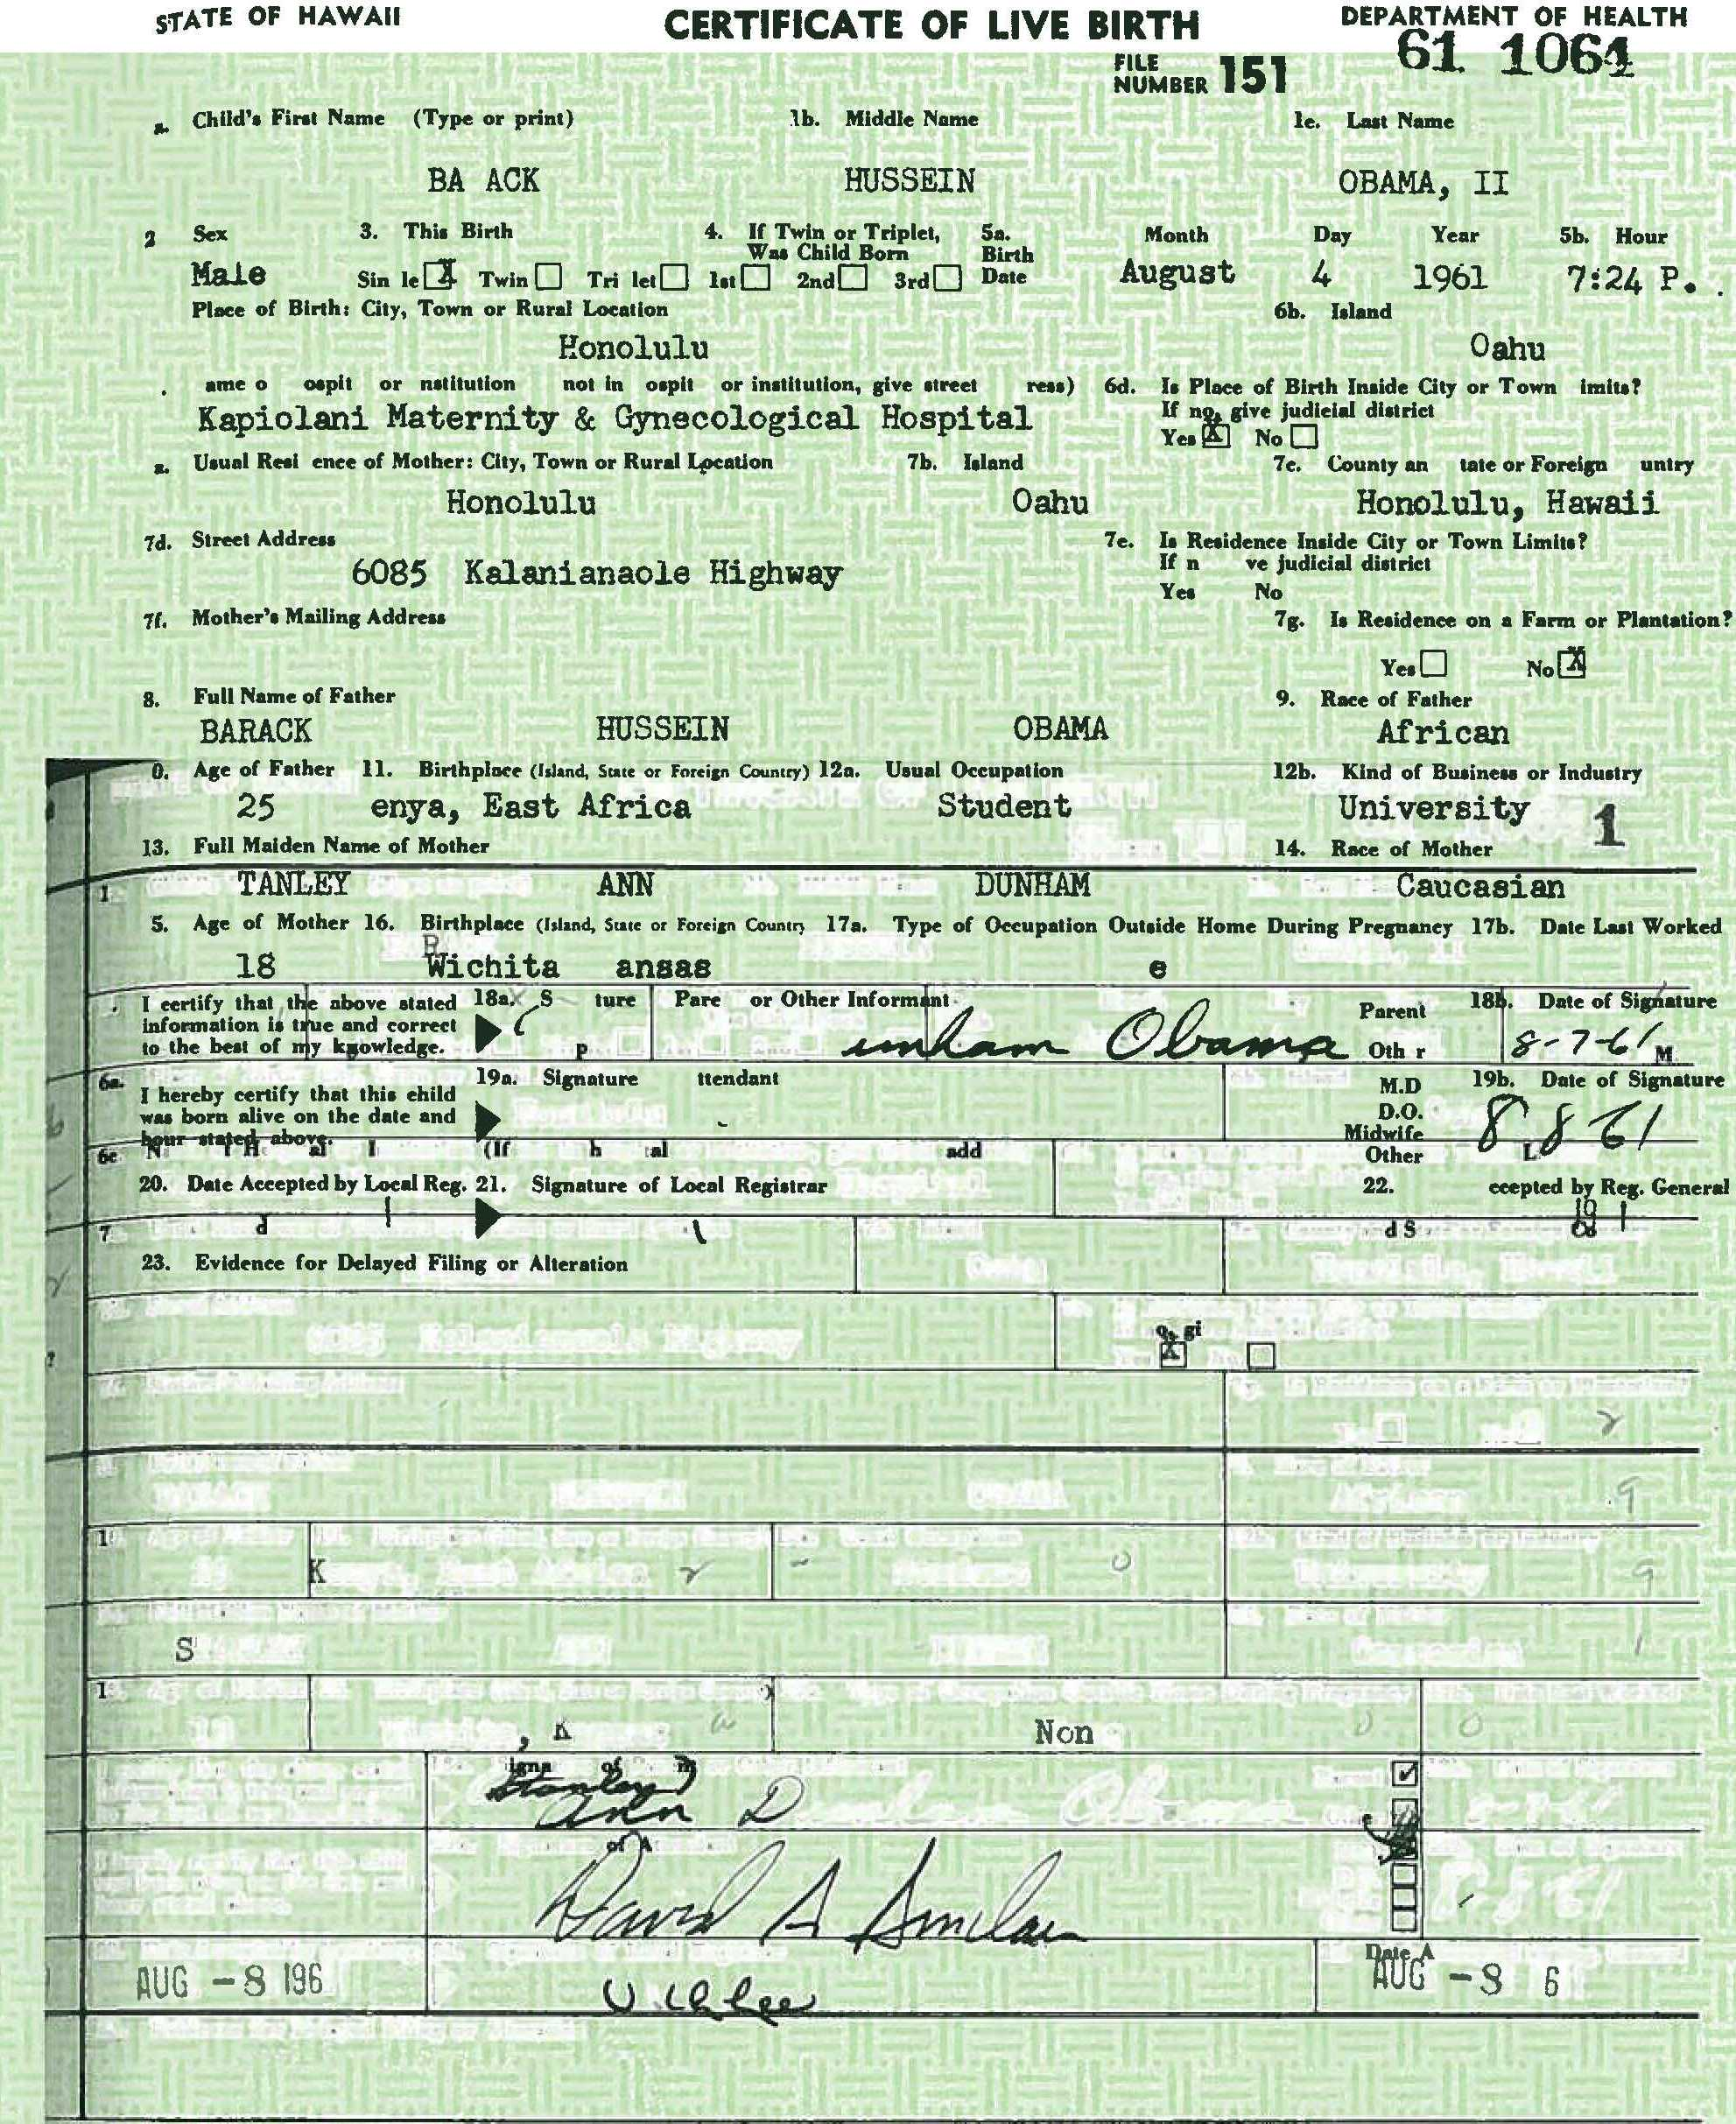 The real truth about obamas certificate of live birth h2ooflife obama birth certificate altered xflitez Choice Image